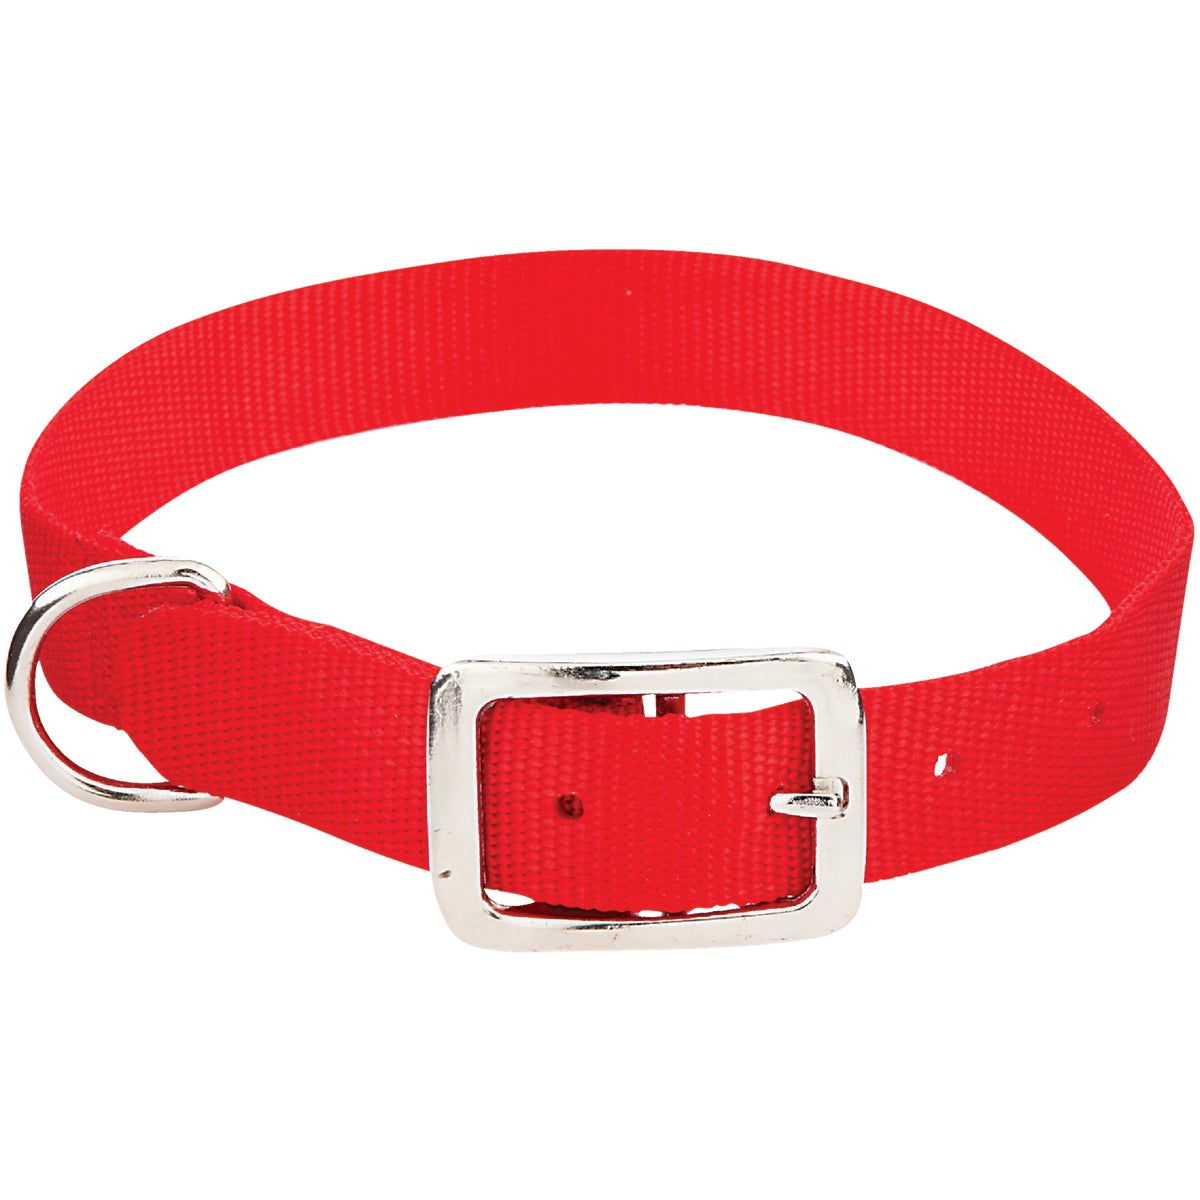 1X22 NYLON COLLAR - 31422 by Westminster Pet